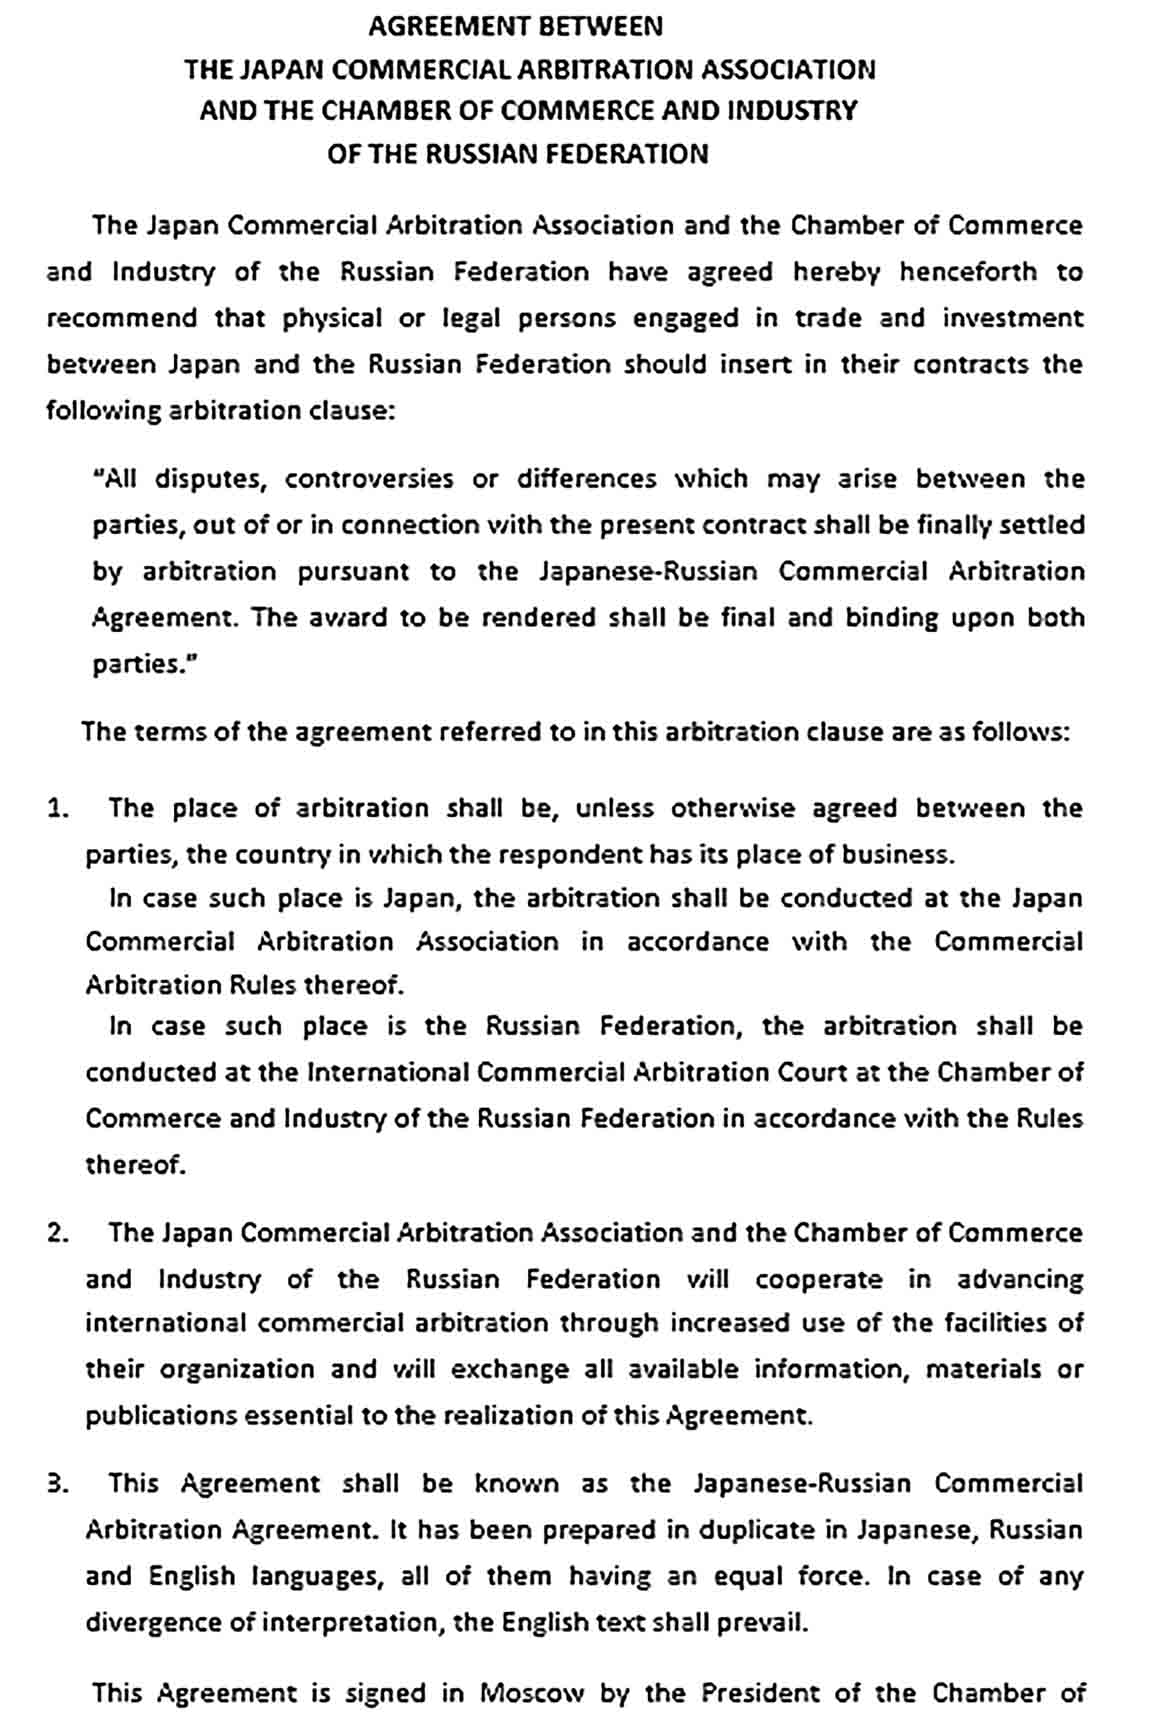 Sample Commercial Arbitration Agreement